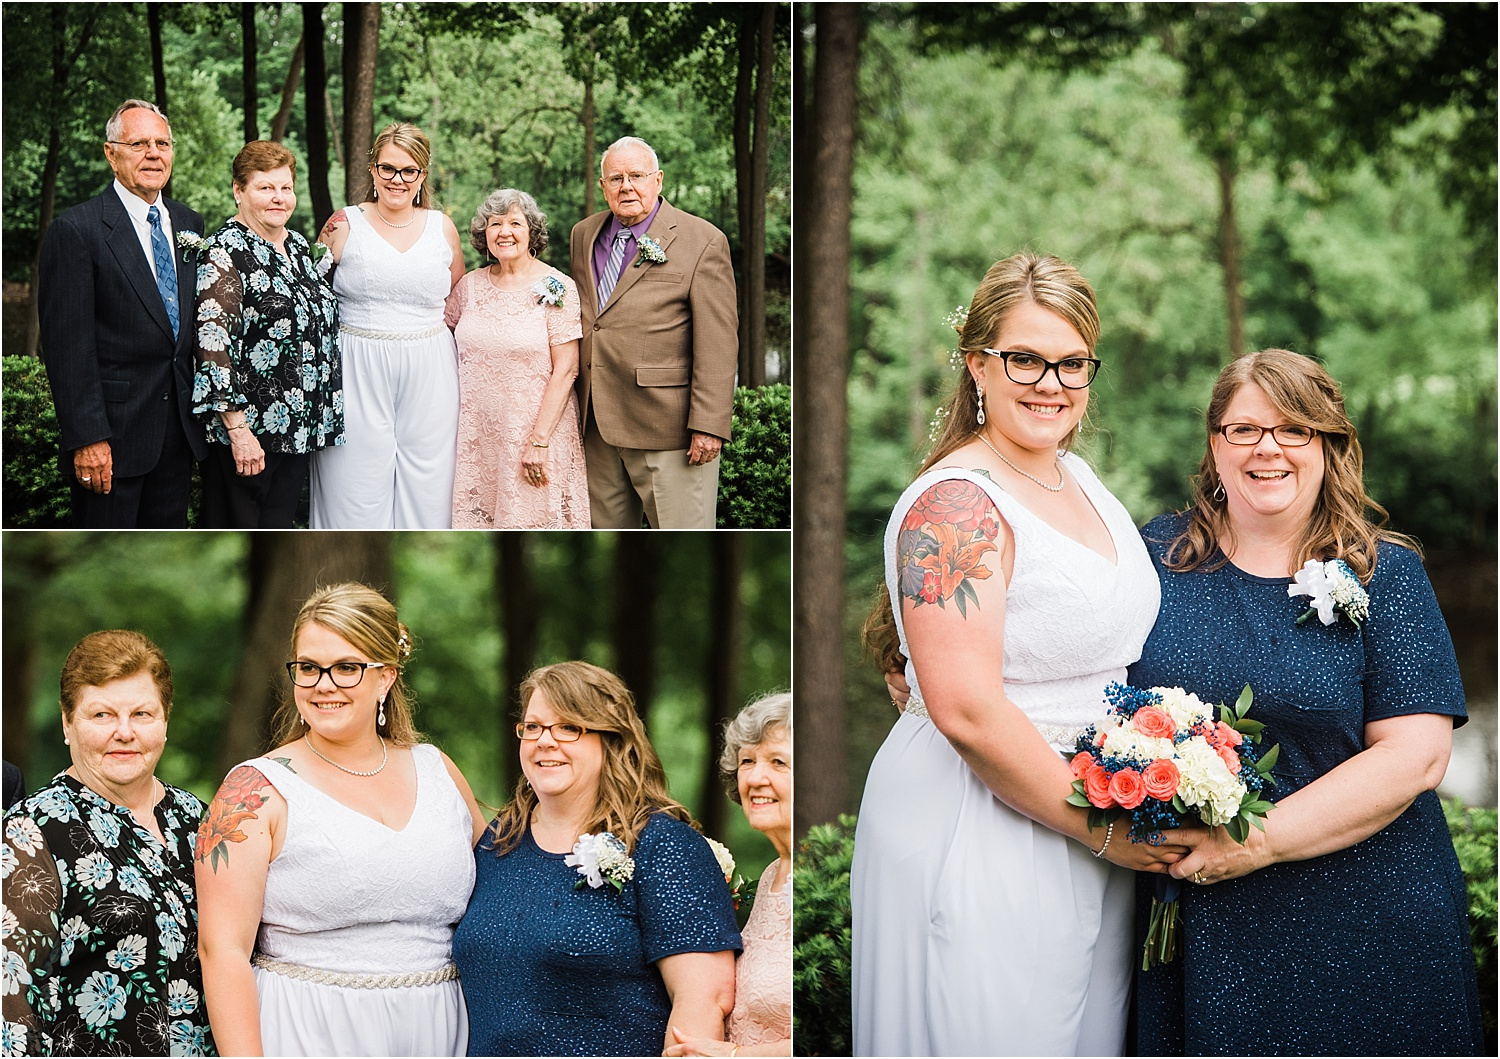 The_Riverview_Simsbury_Connecticut_Wedding_LGBT_Weddings_036.jpg